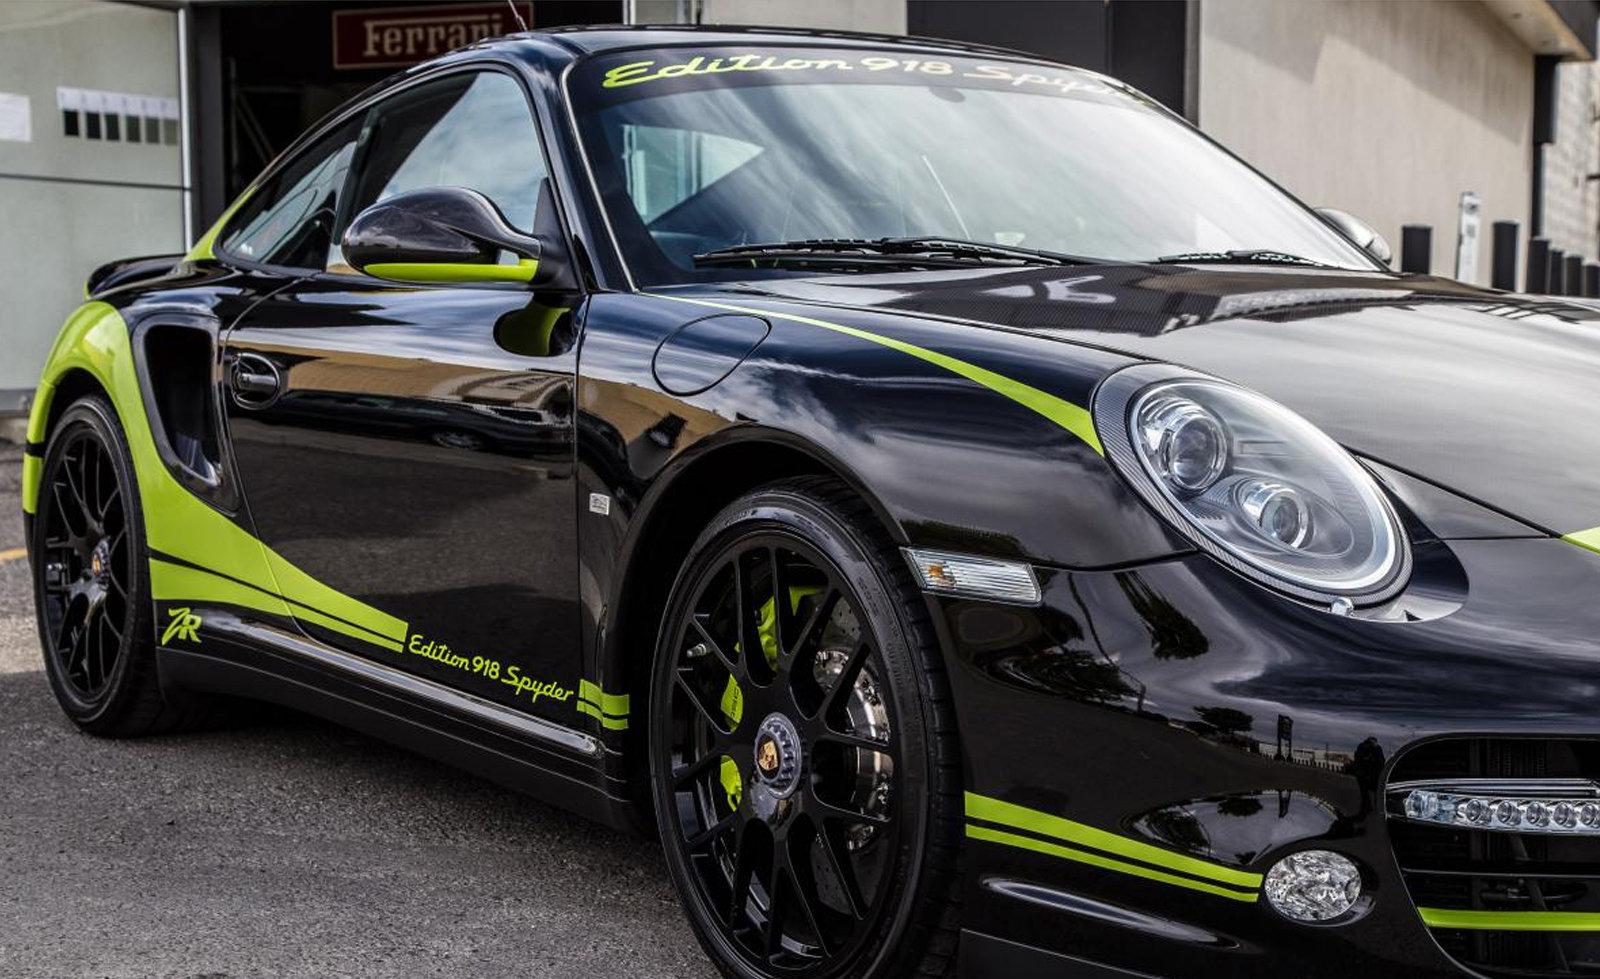 2011 porsche 911 turbo s edition 918 spyder by zr auto picture 528391 car review top speed. Black Bedroom Furniture Sets. Home Design Ideas